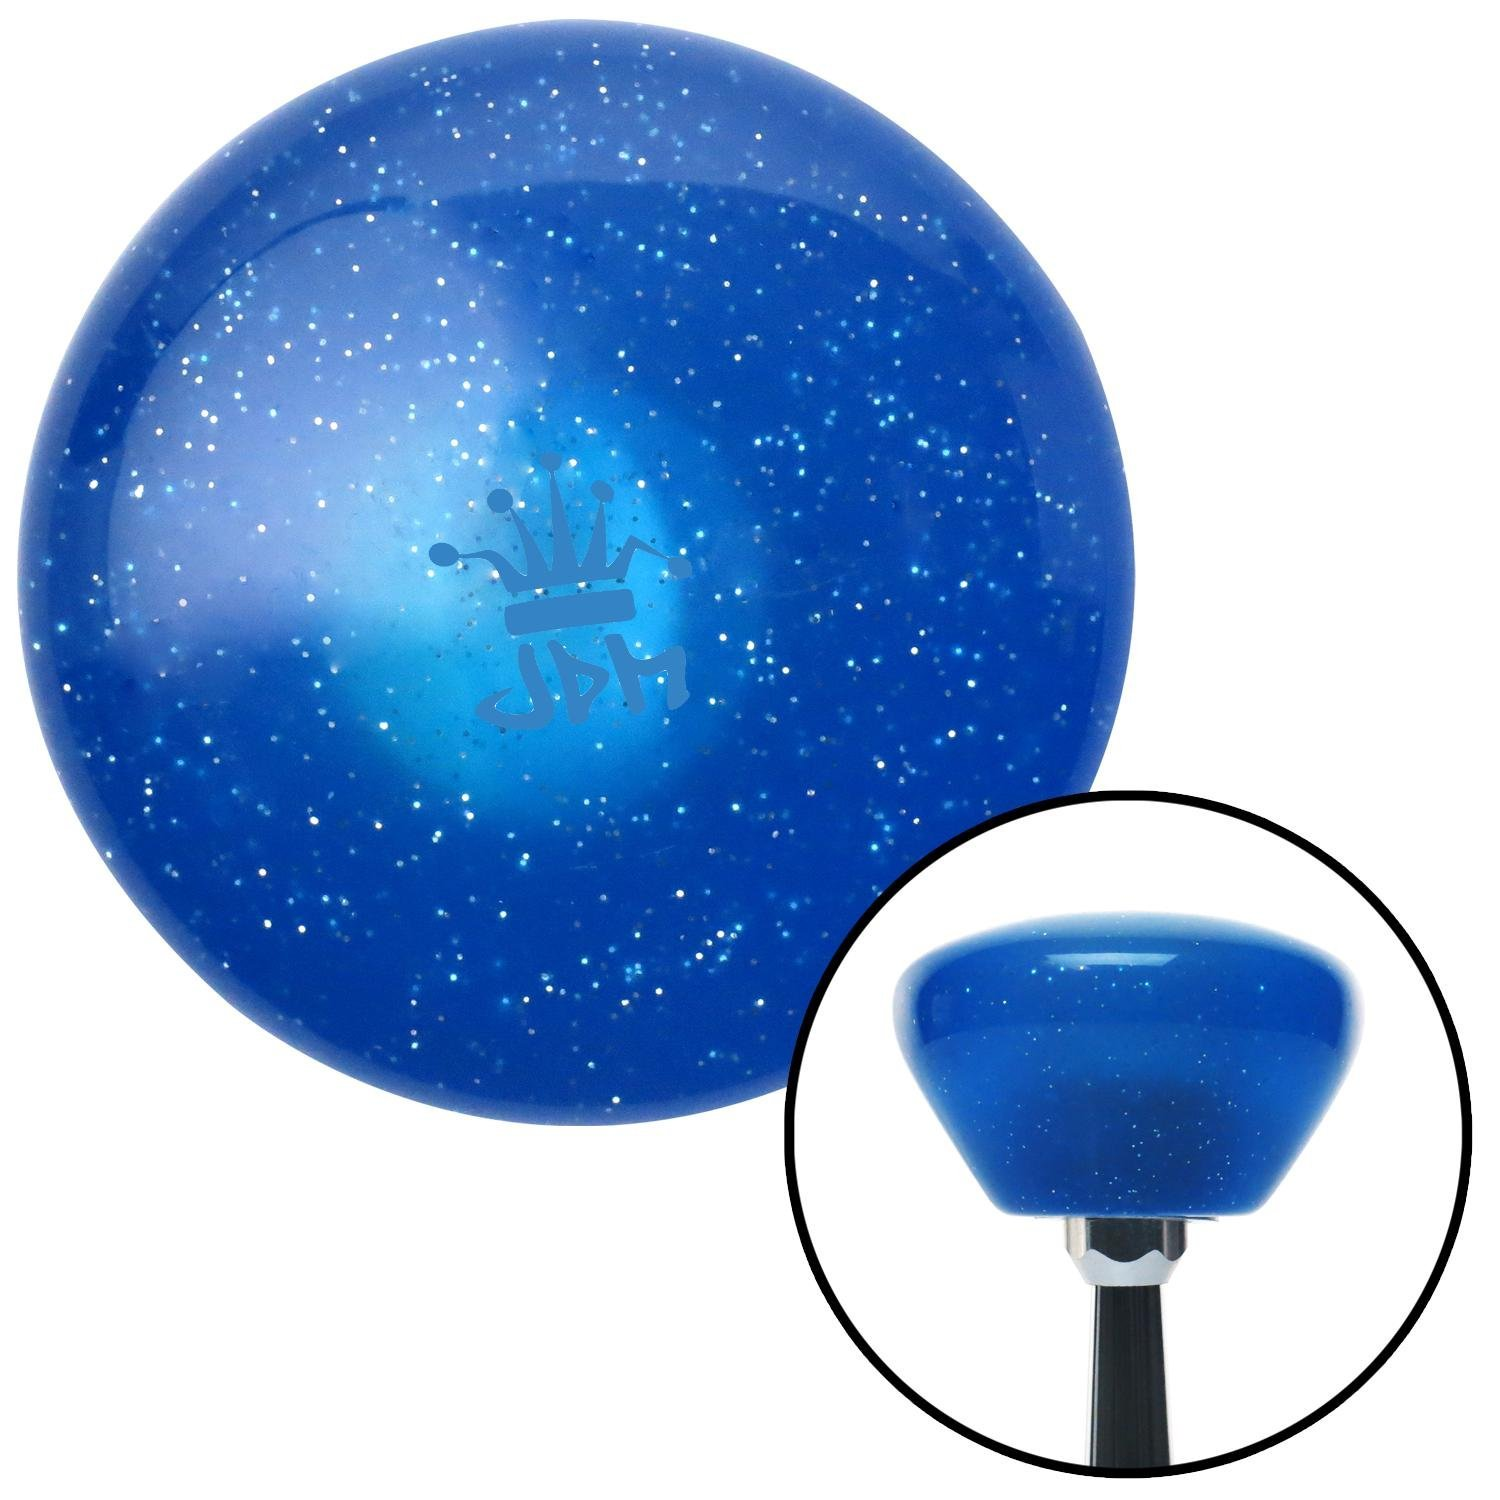 Blue JDM King American Shifter 191406 Blue Retro Metal Flake Shift Knob with M16 x 1.5 Insert